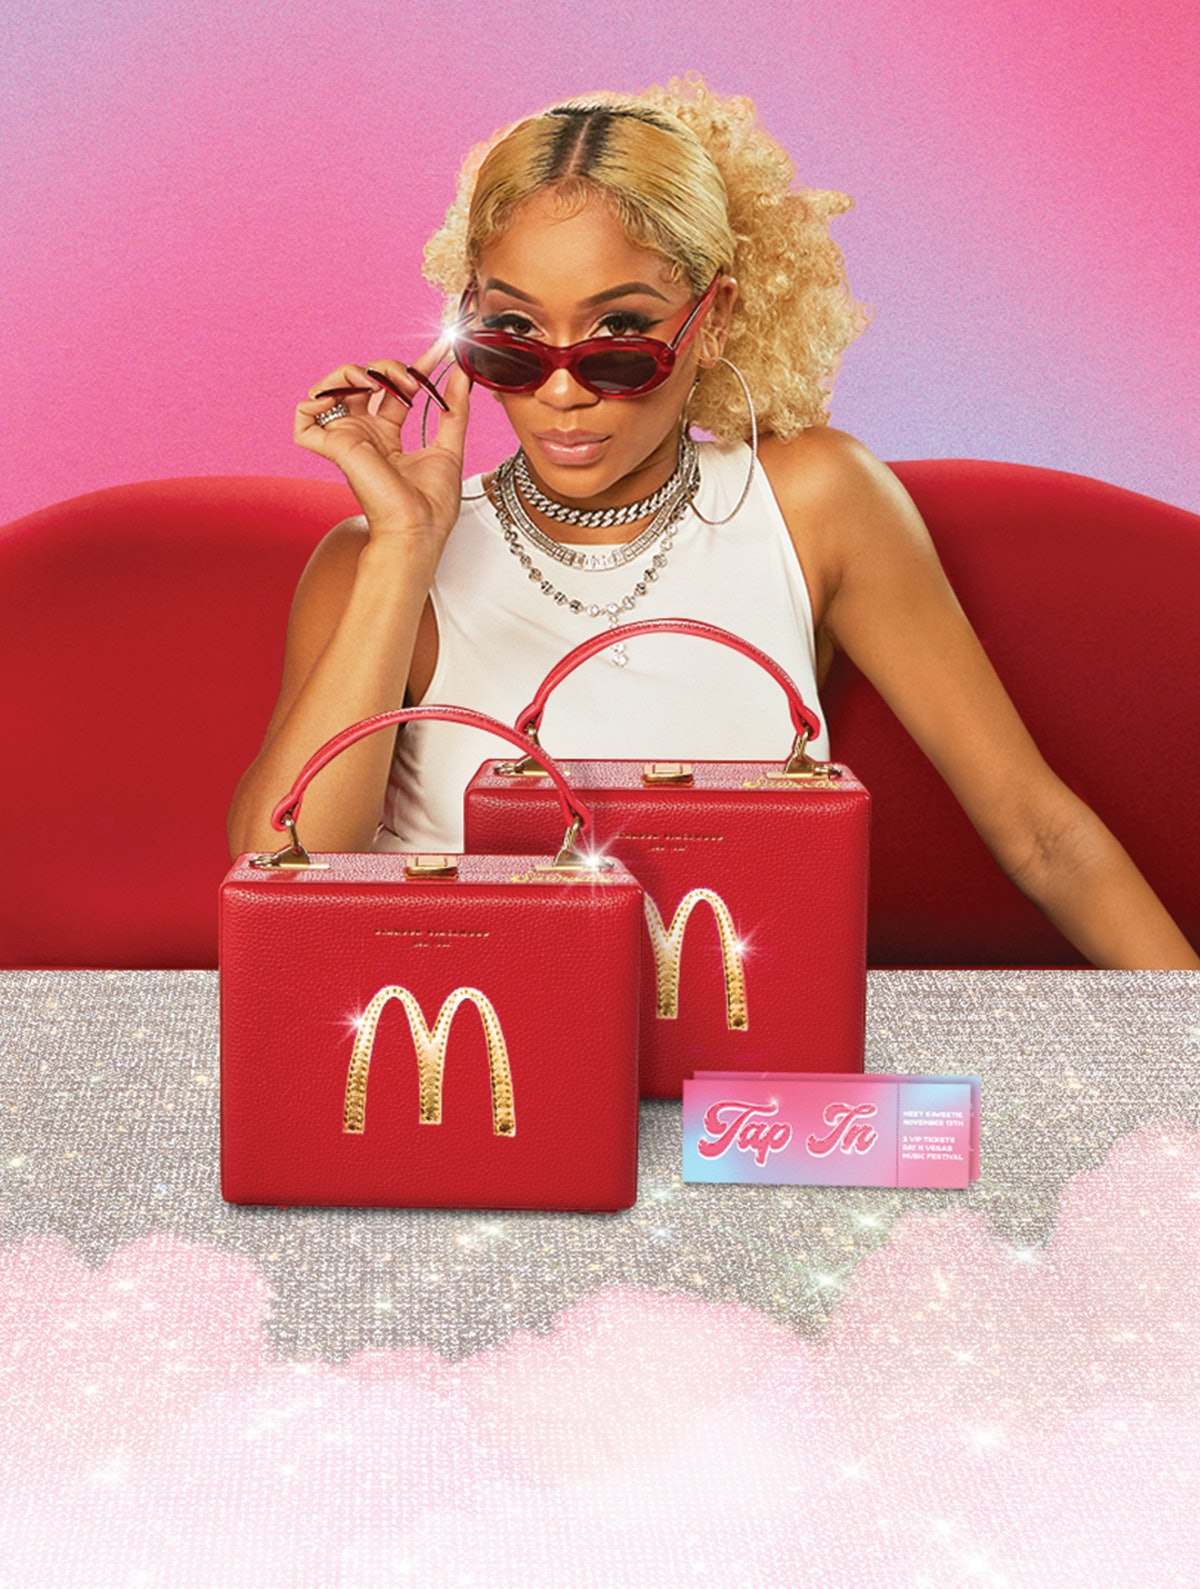 McDonald's Saweetie Meal sweepstakes could win you a Las Vegas trip.